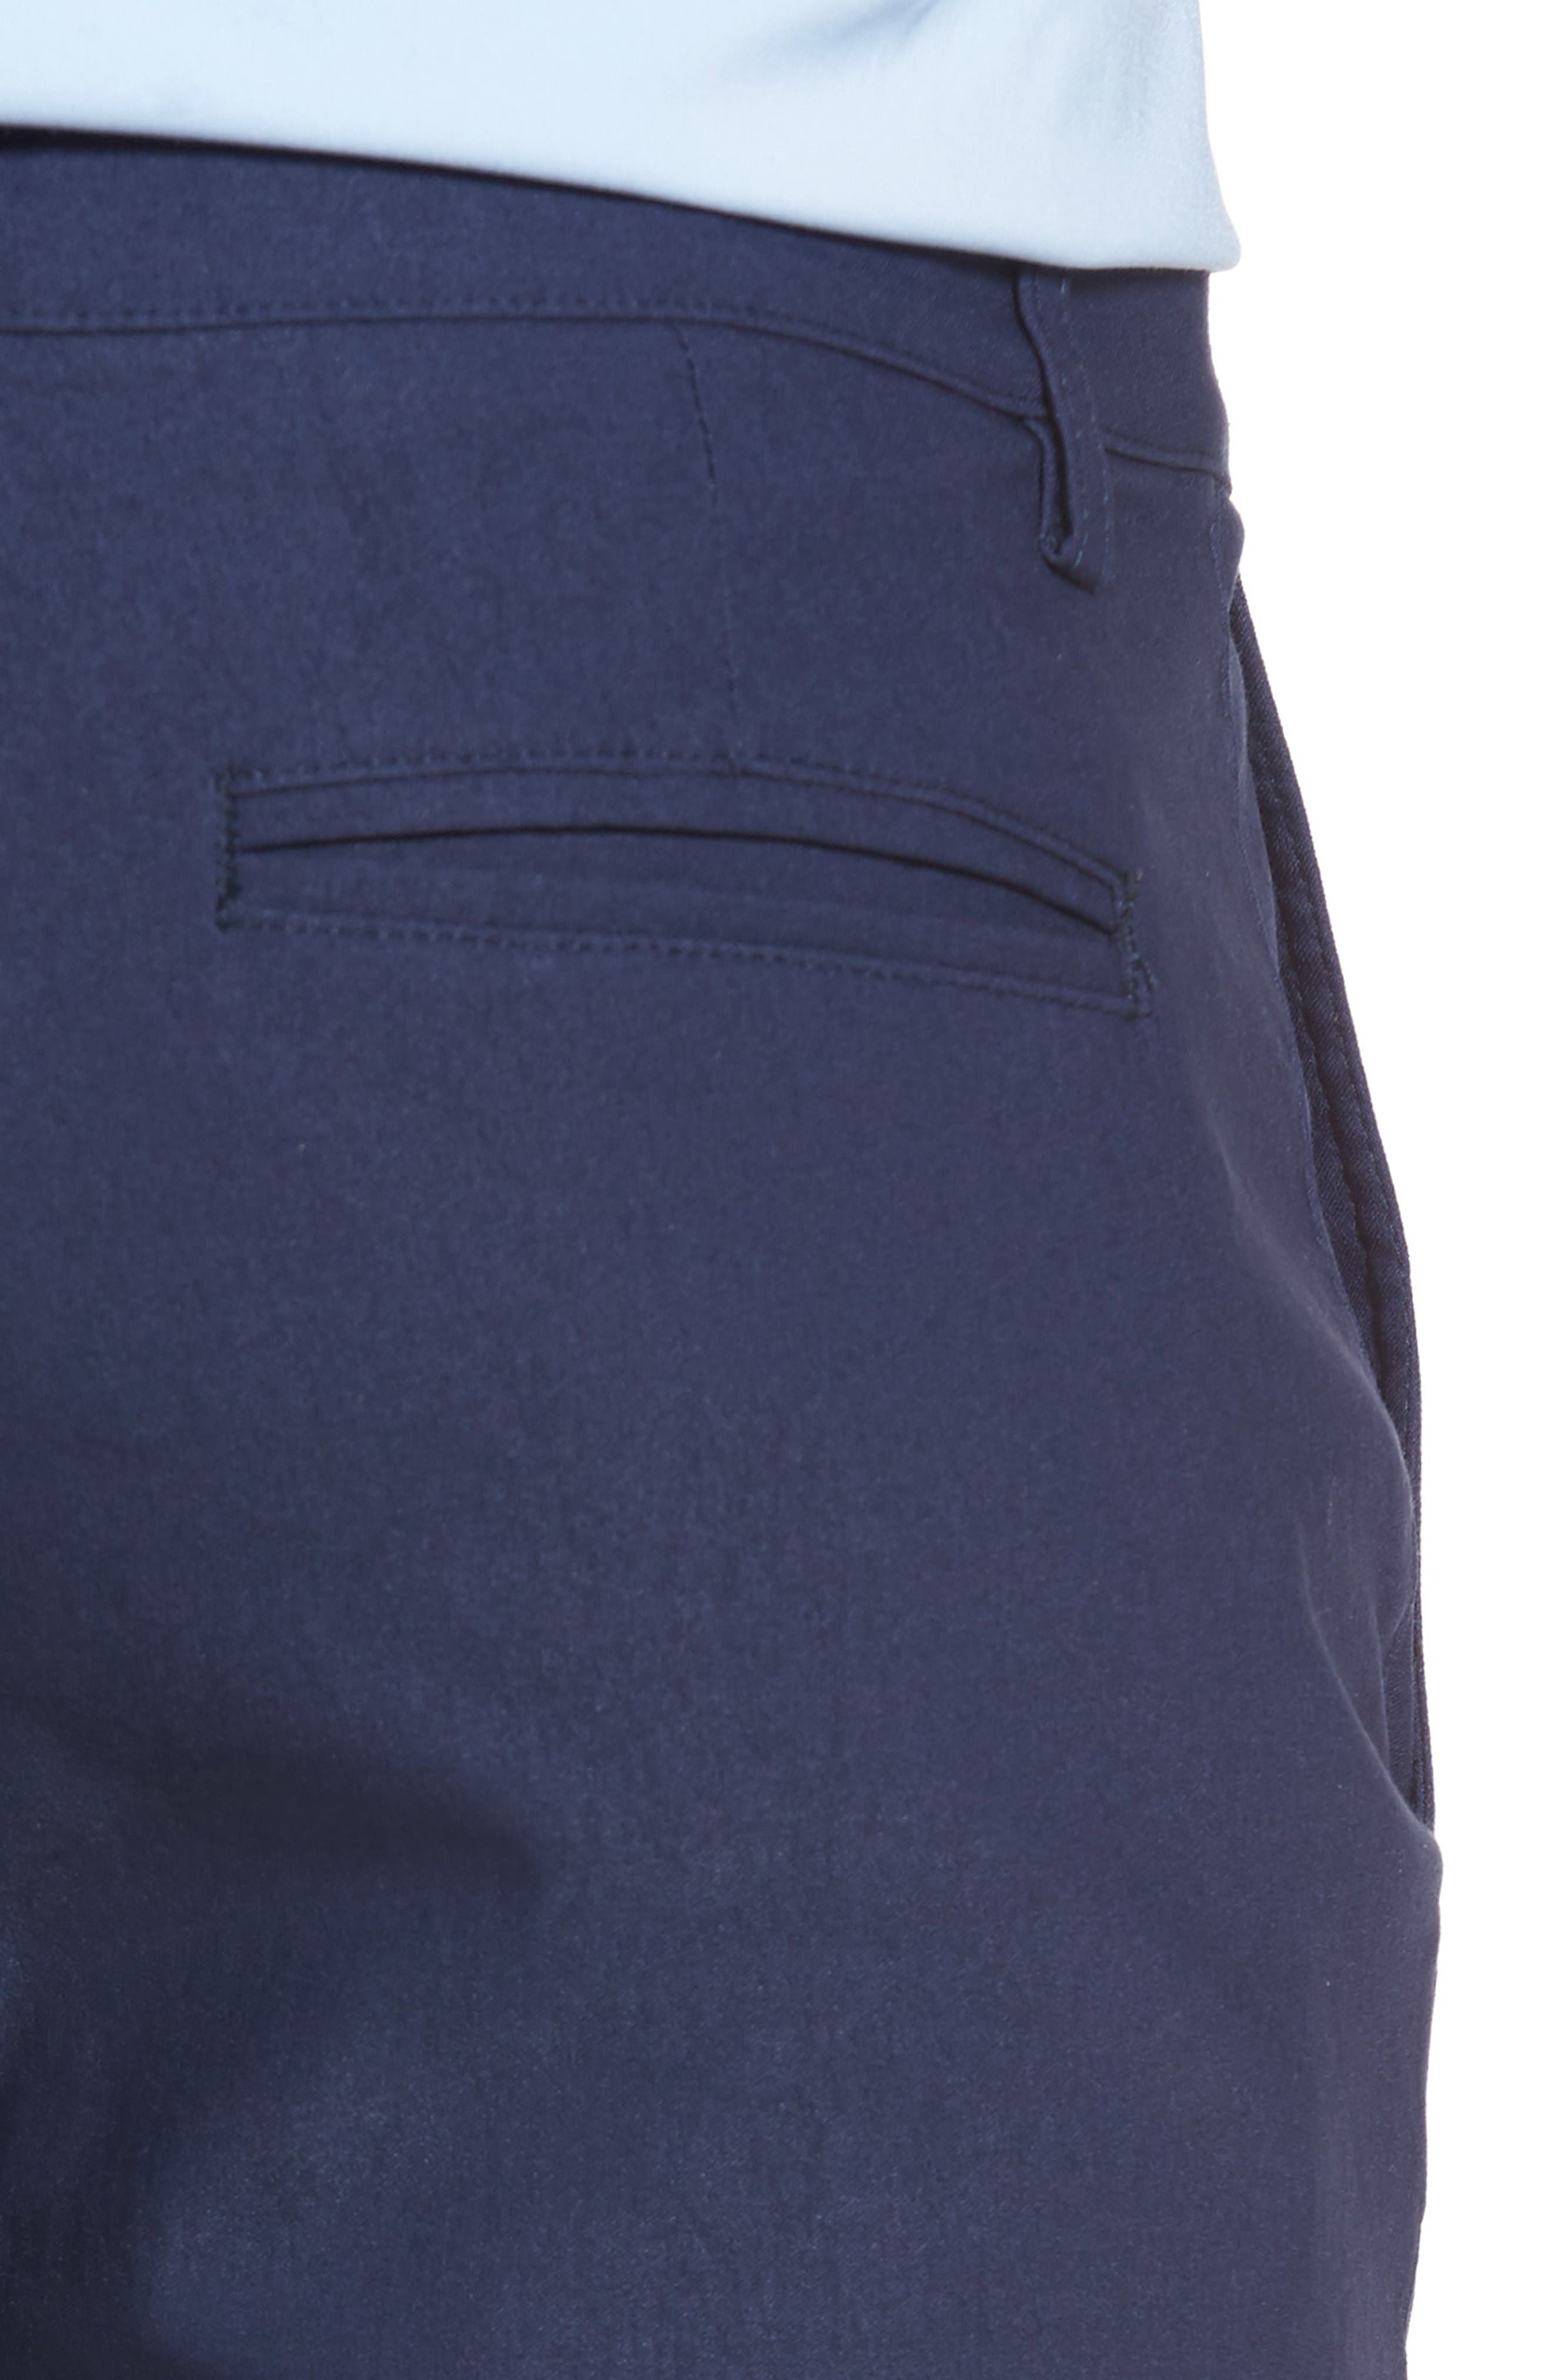 President Trim Fit Performance Chinos,                             Alternate thumbnail 4, color,                             Navy